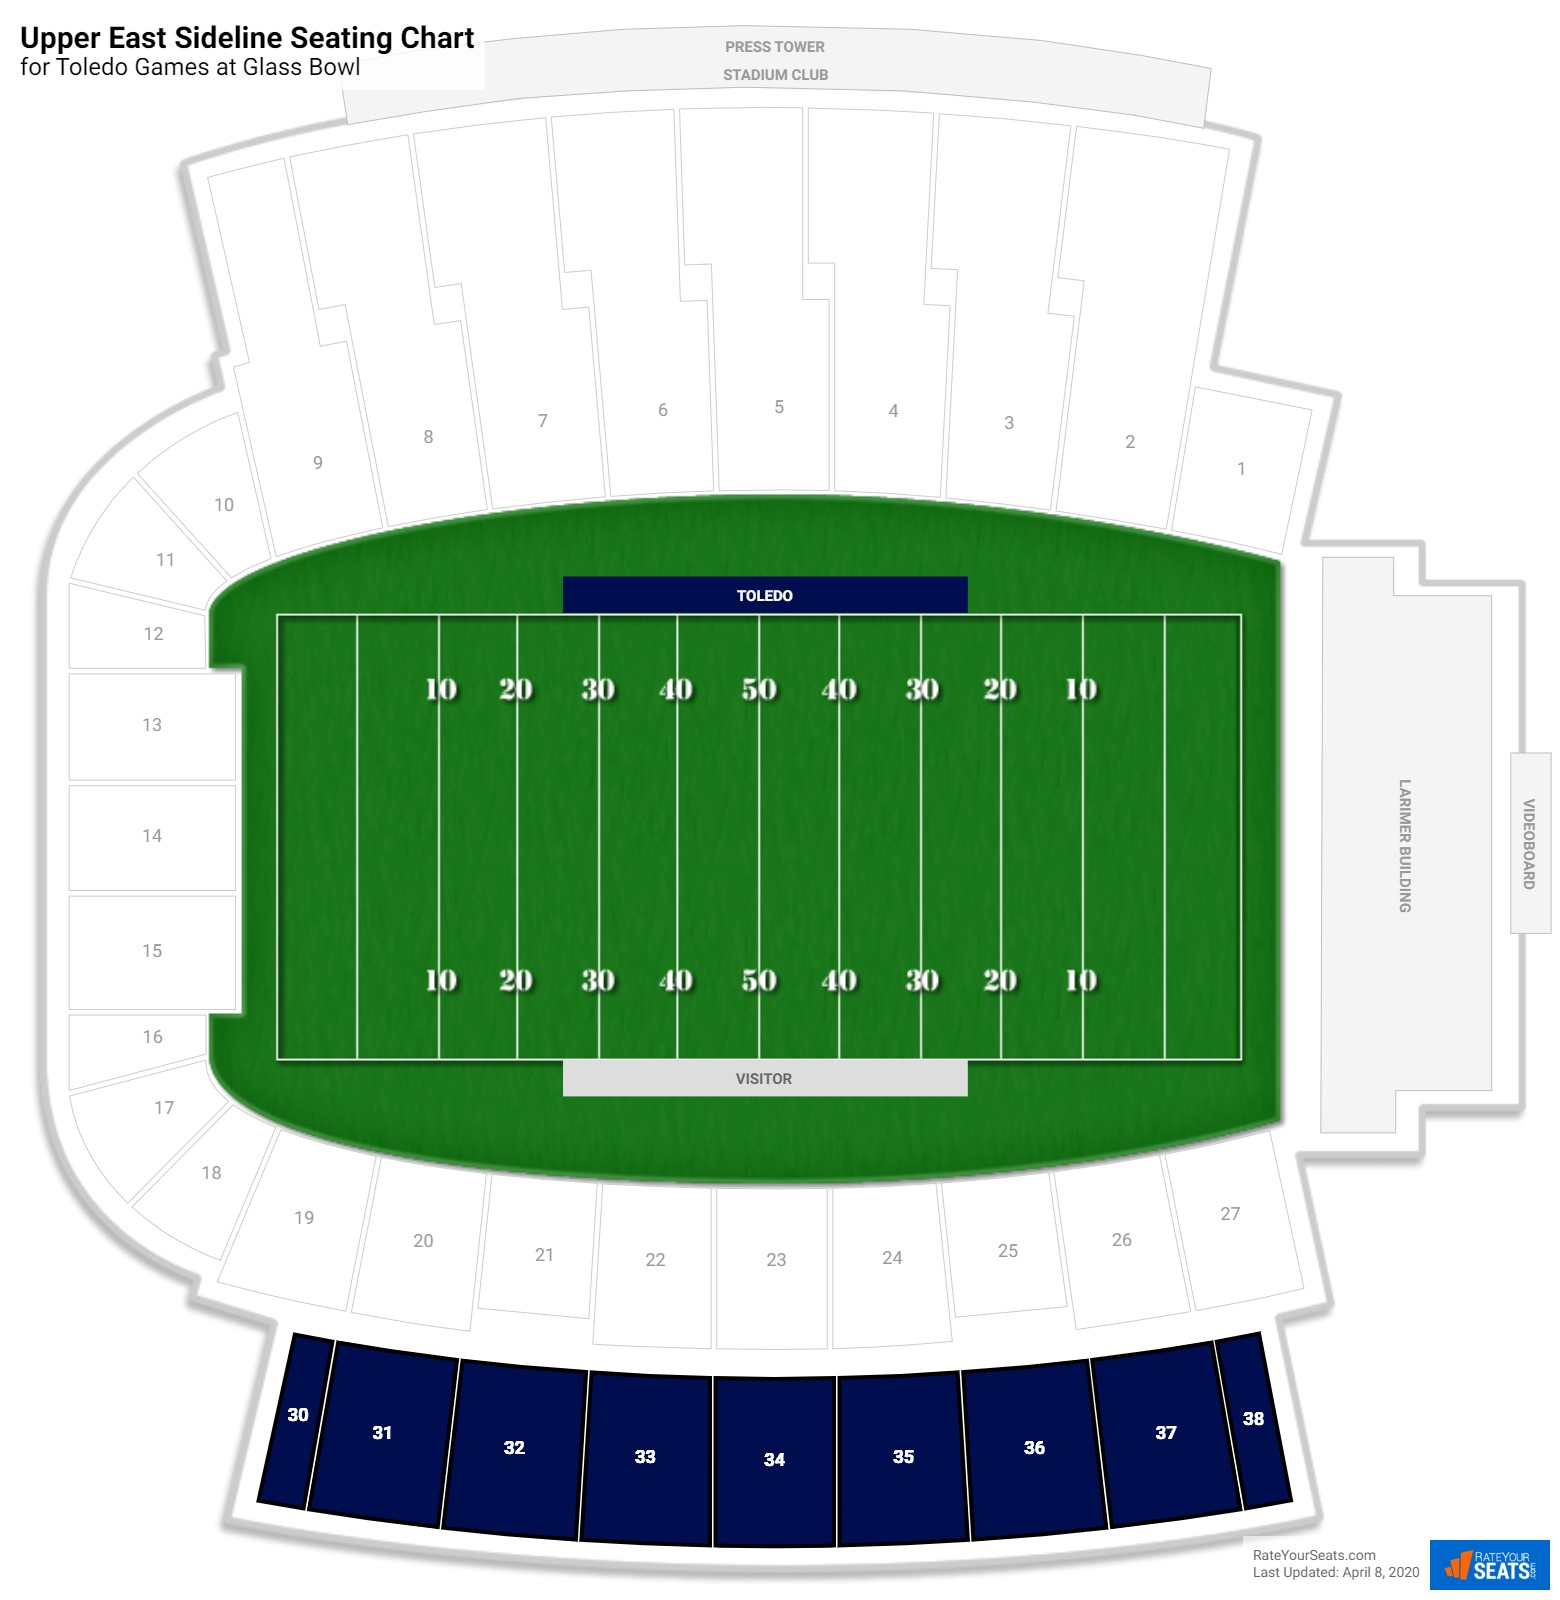 Glass Bowl Upper East Sideline seating chart